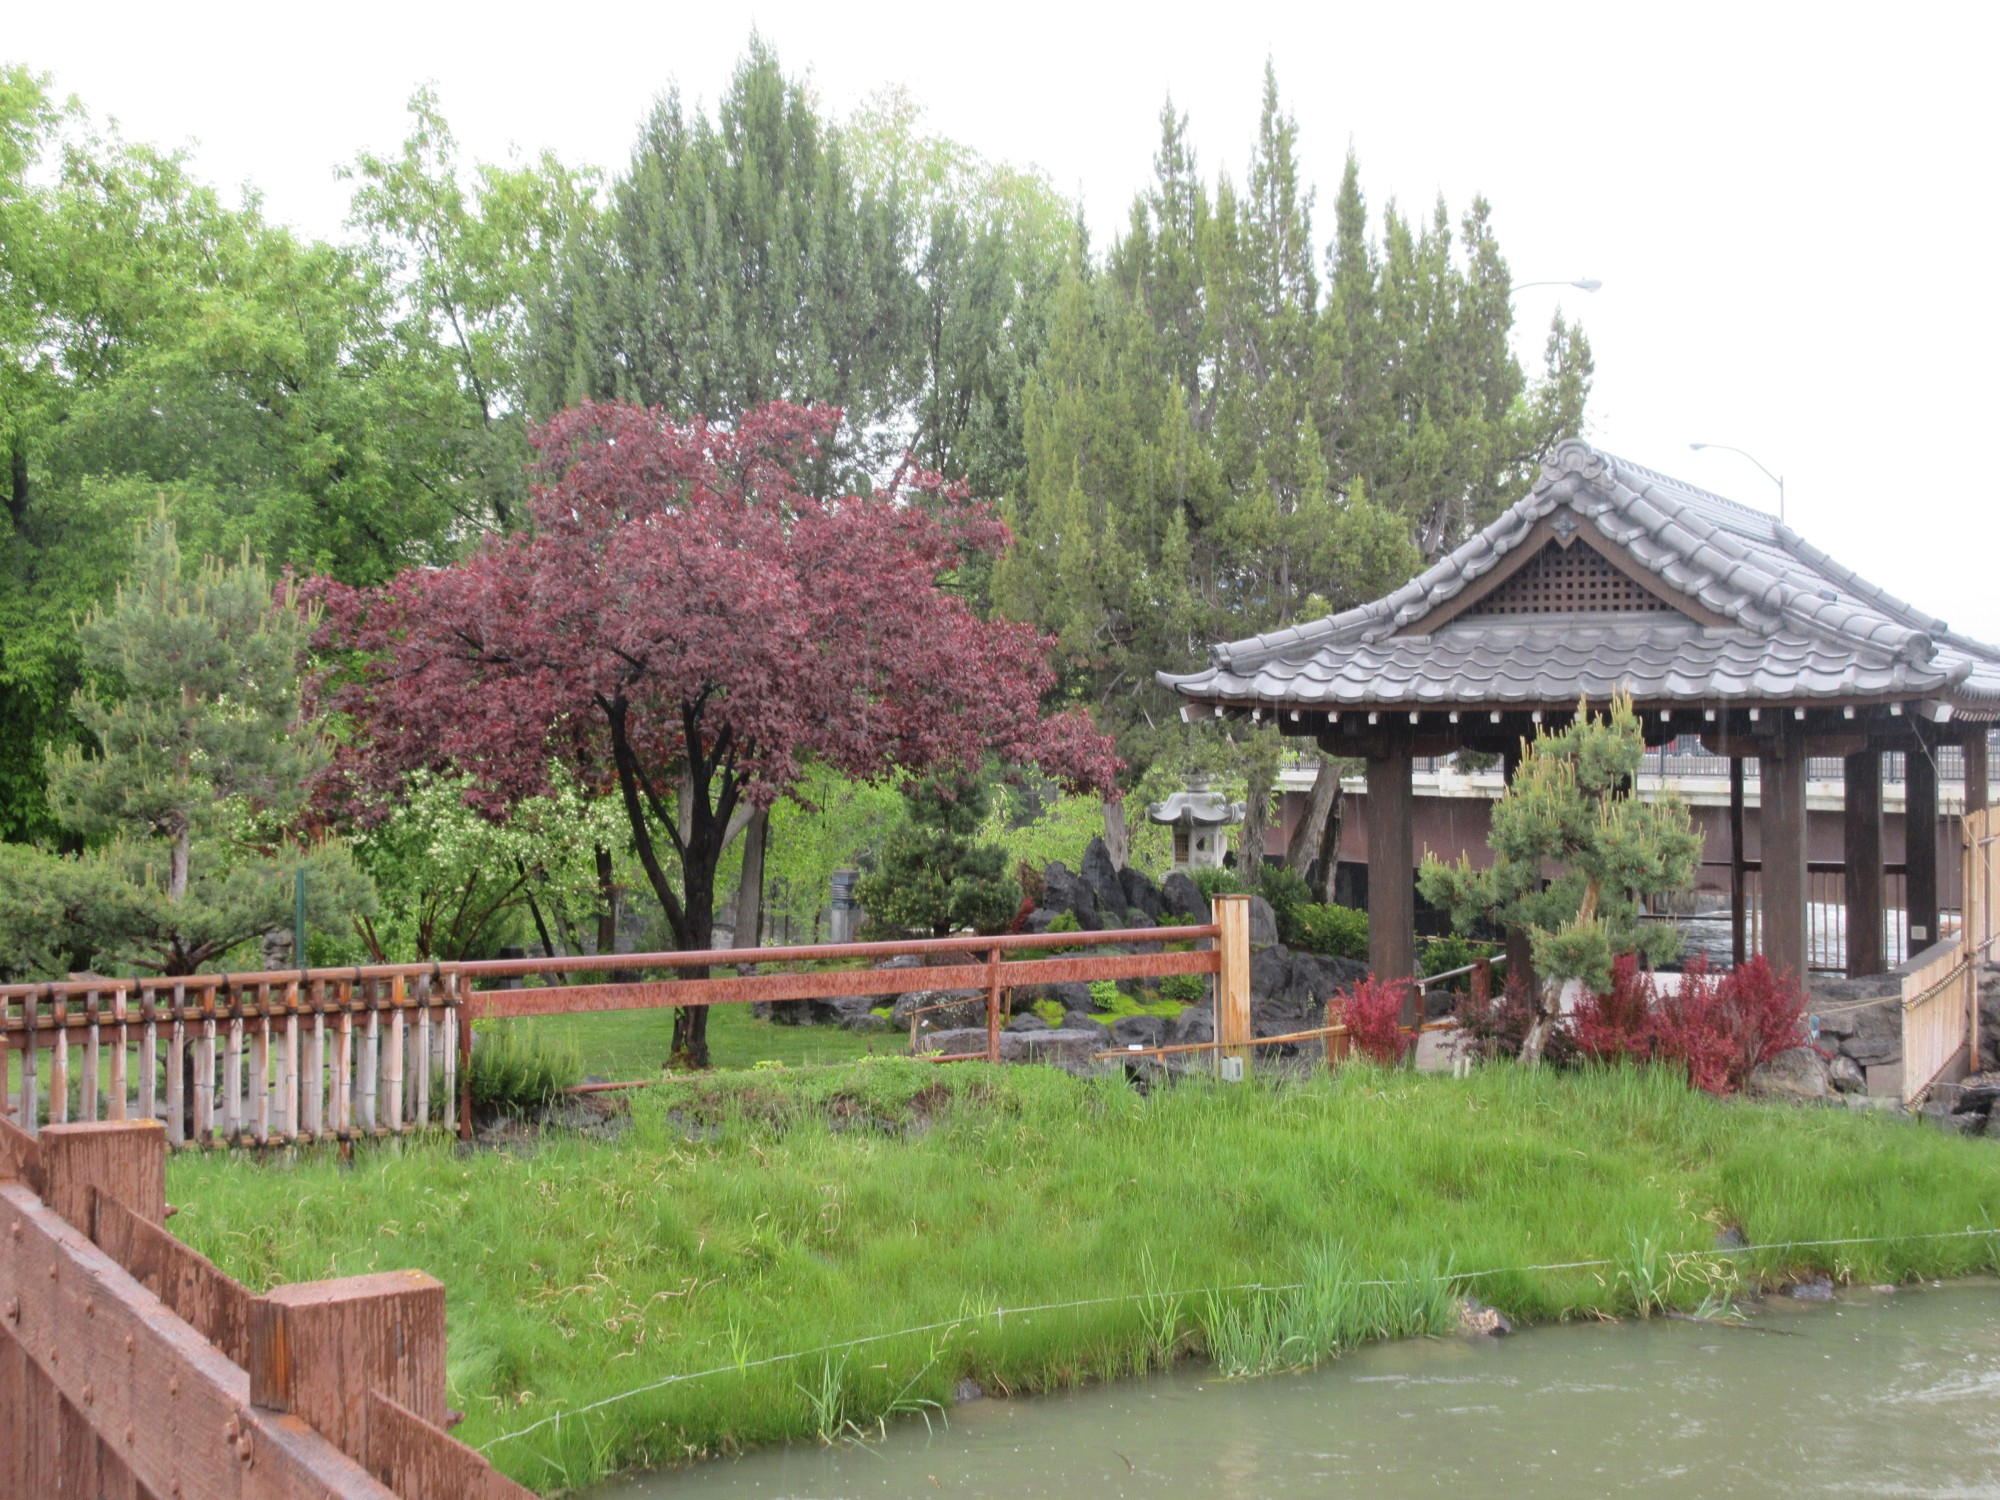 Idaho Falls Japanese Friendship Garden 1 Idaho Pictures United States In Global Geography